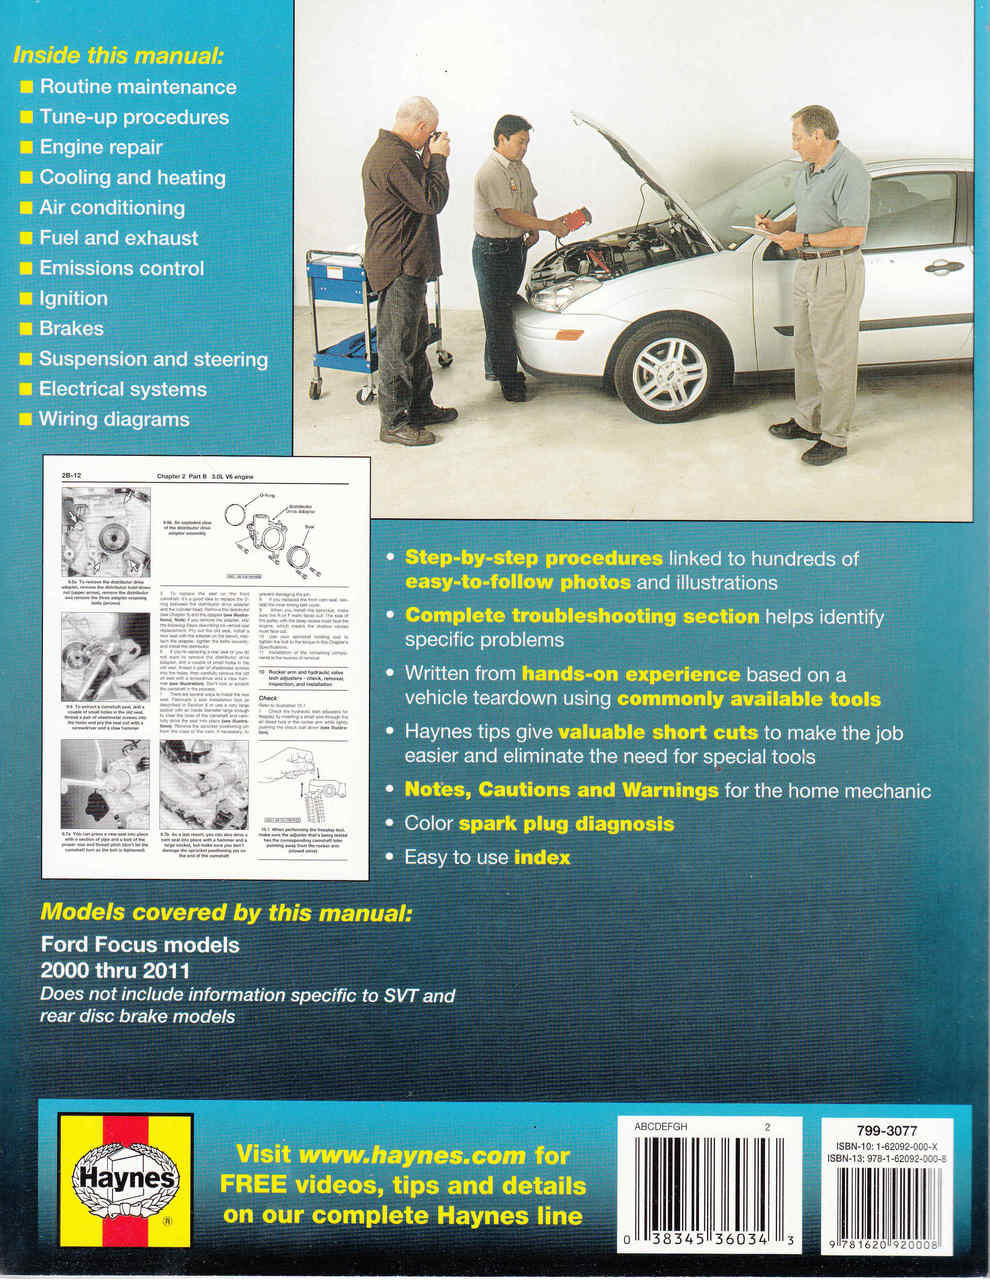 ford focus 2000 2011 petrol workshop manual 9781620920008  [ 990 x 1280 Pixel ]